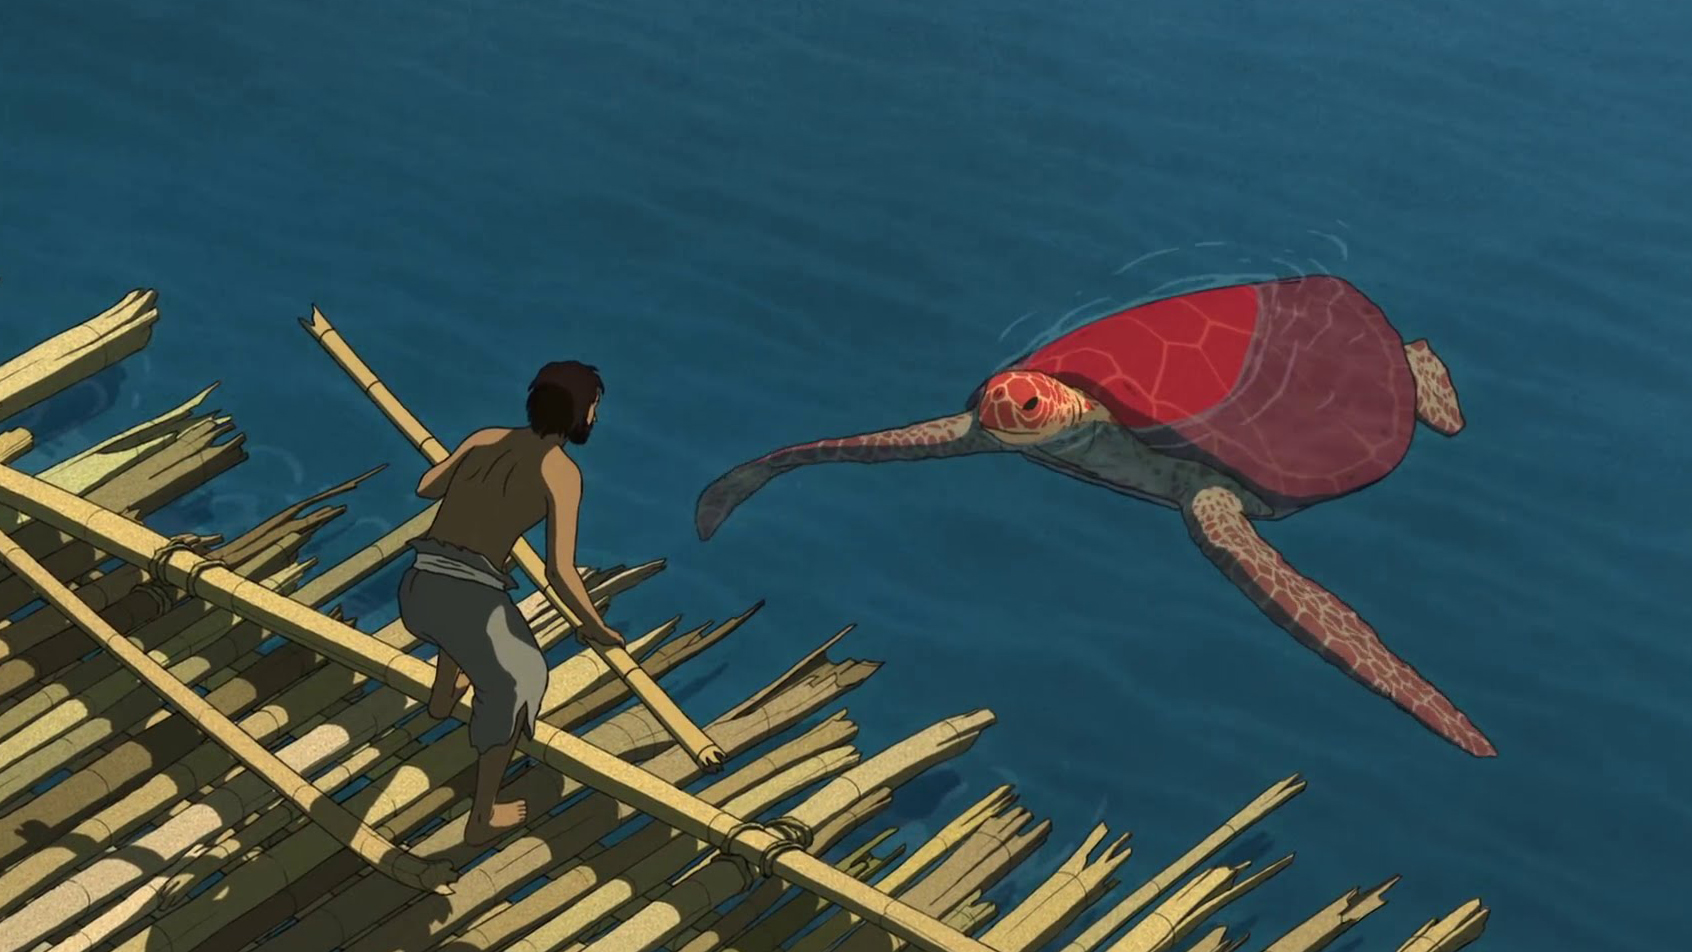 A still from the movie The Red Turtle